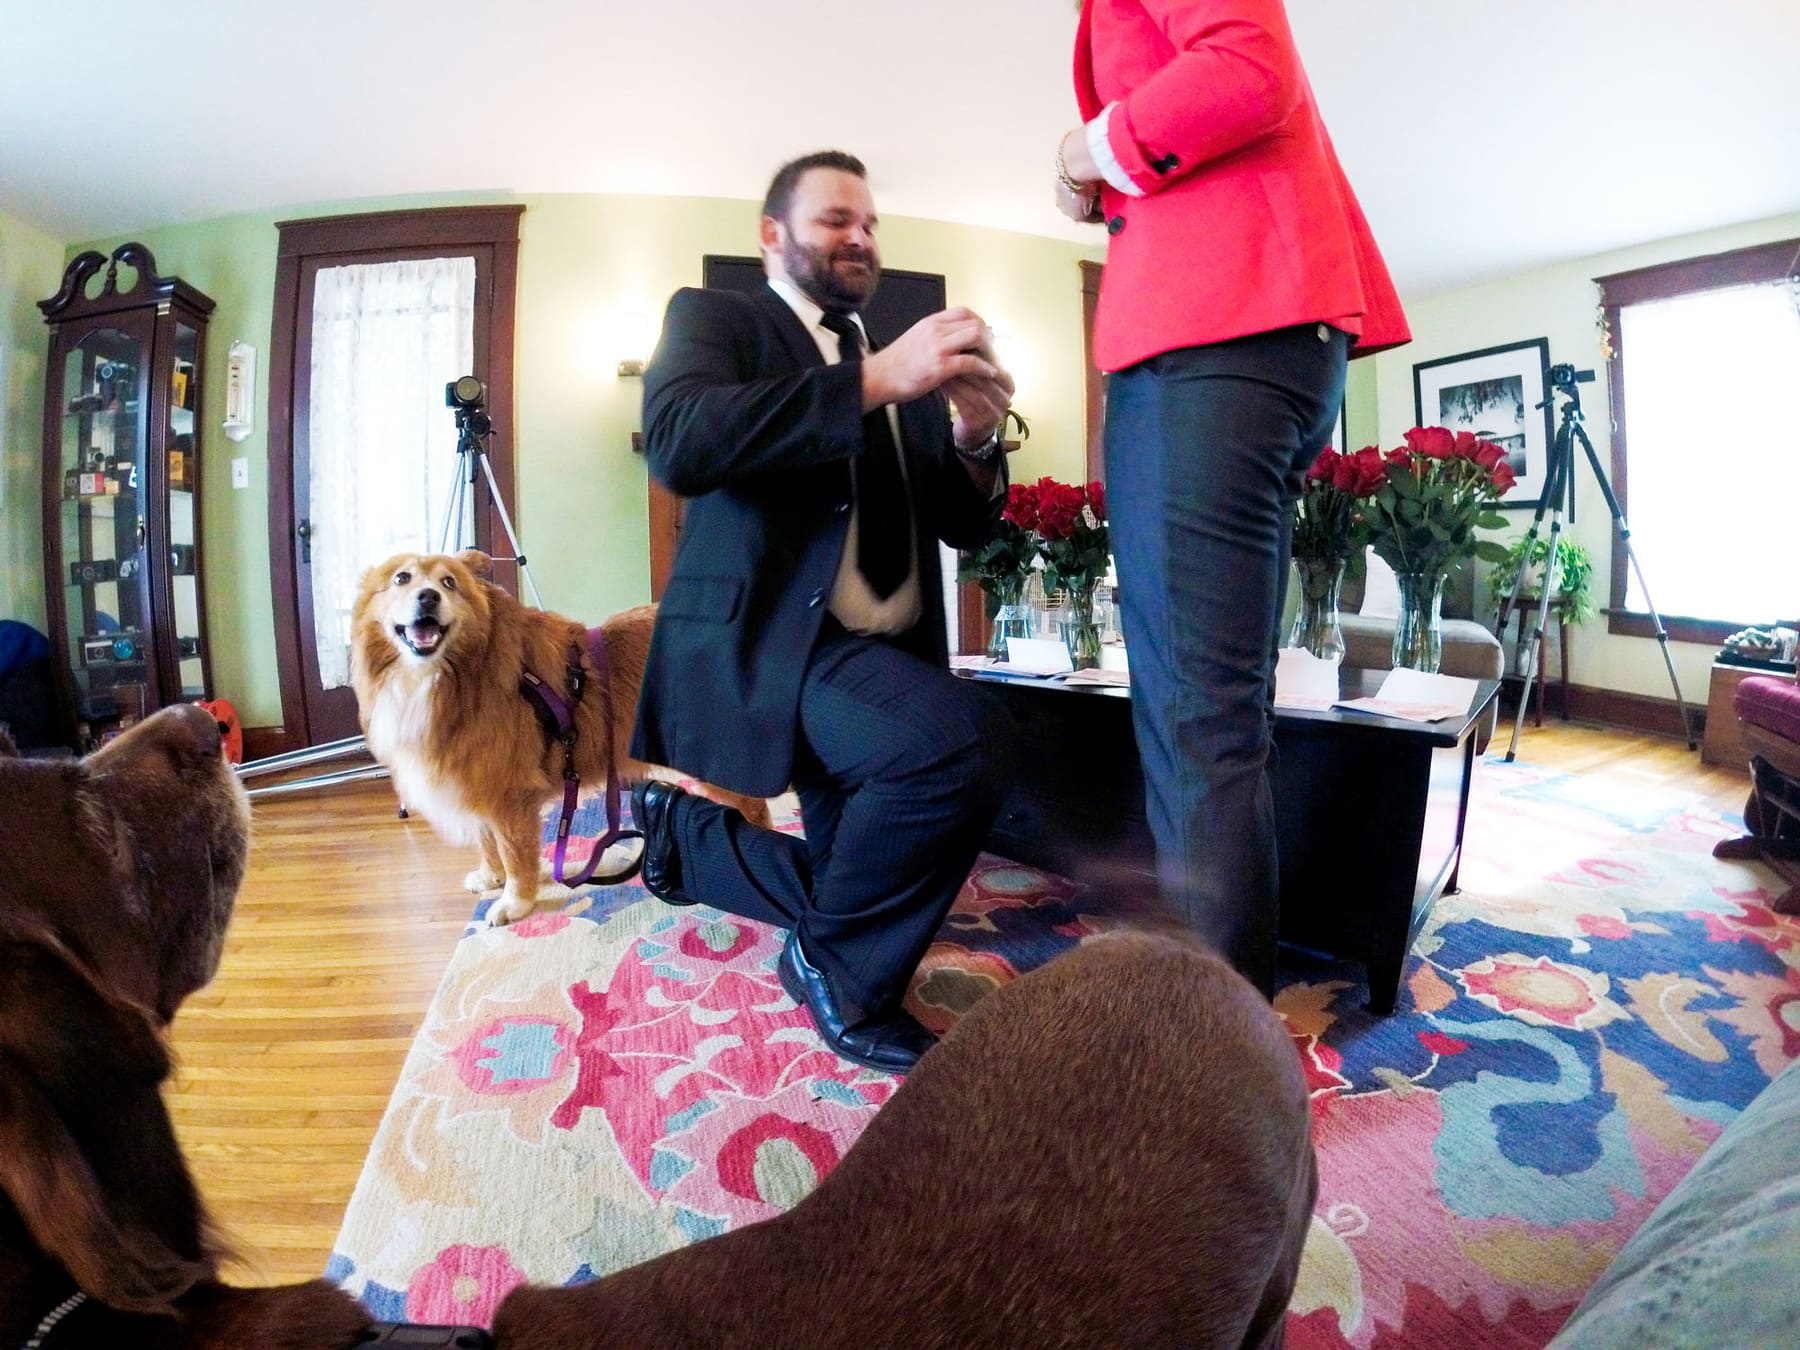 Adam Stultz proposes to Kelly Heck with the dogs!